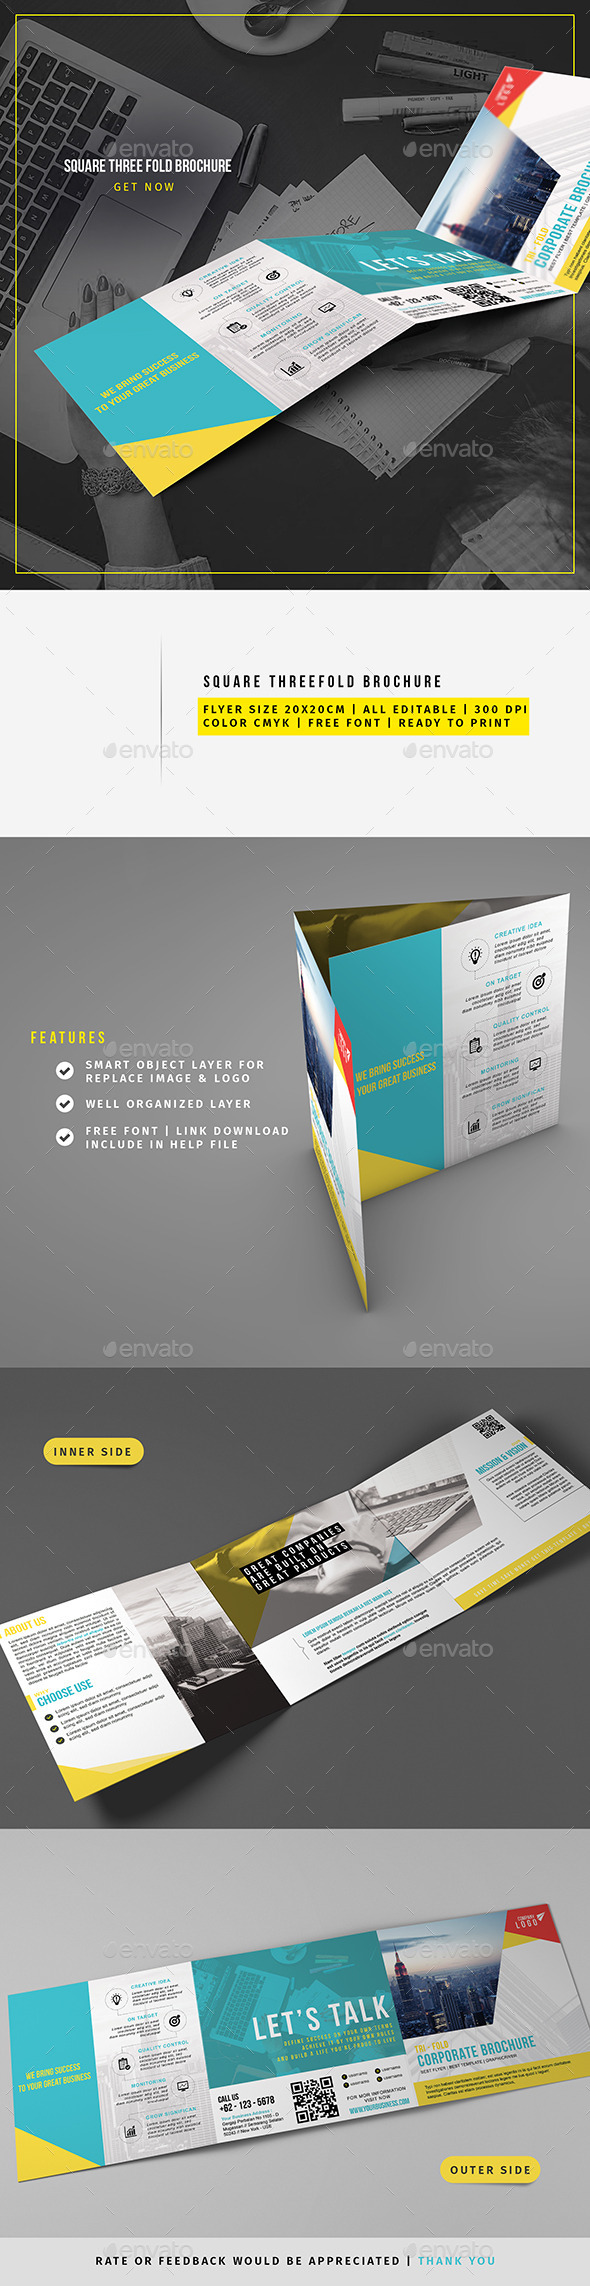 Corporate Square Trifold YA - Corporate Brochures